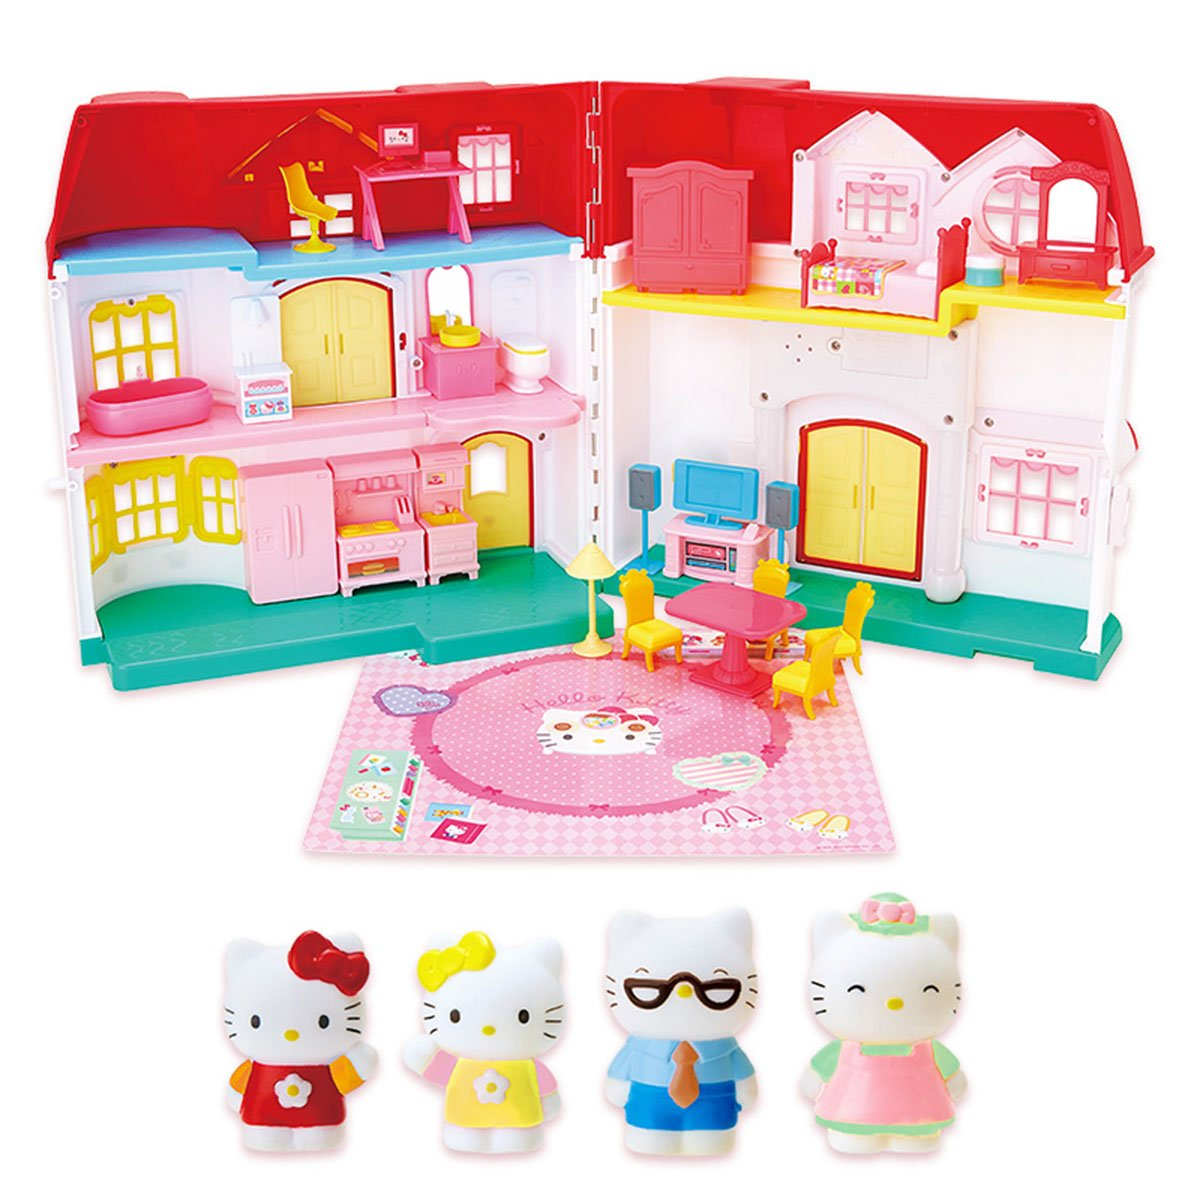 [Hello Kitty] Dollhouse DX